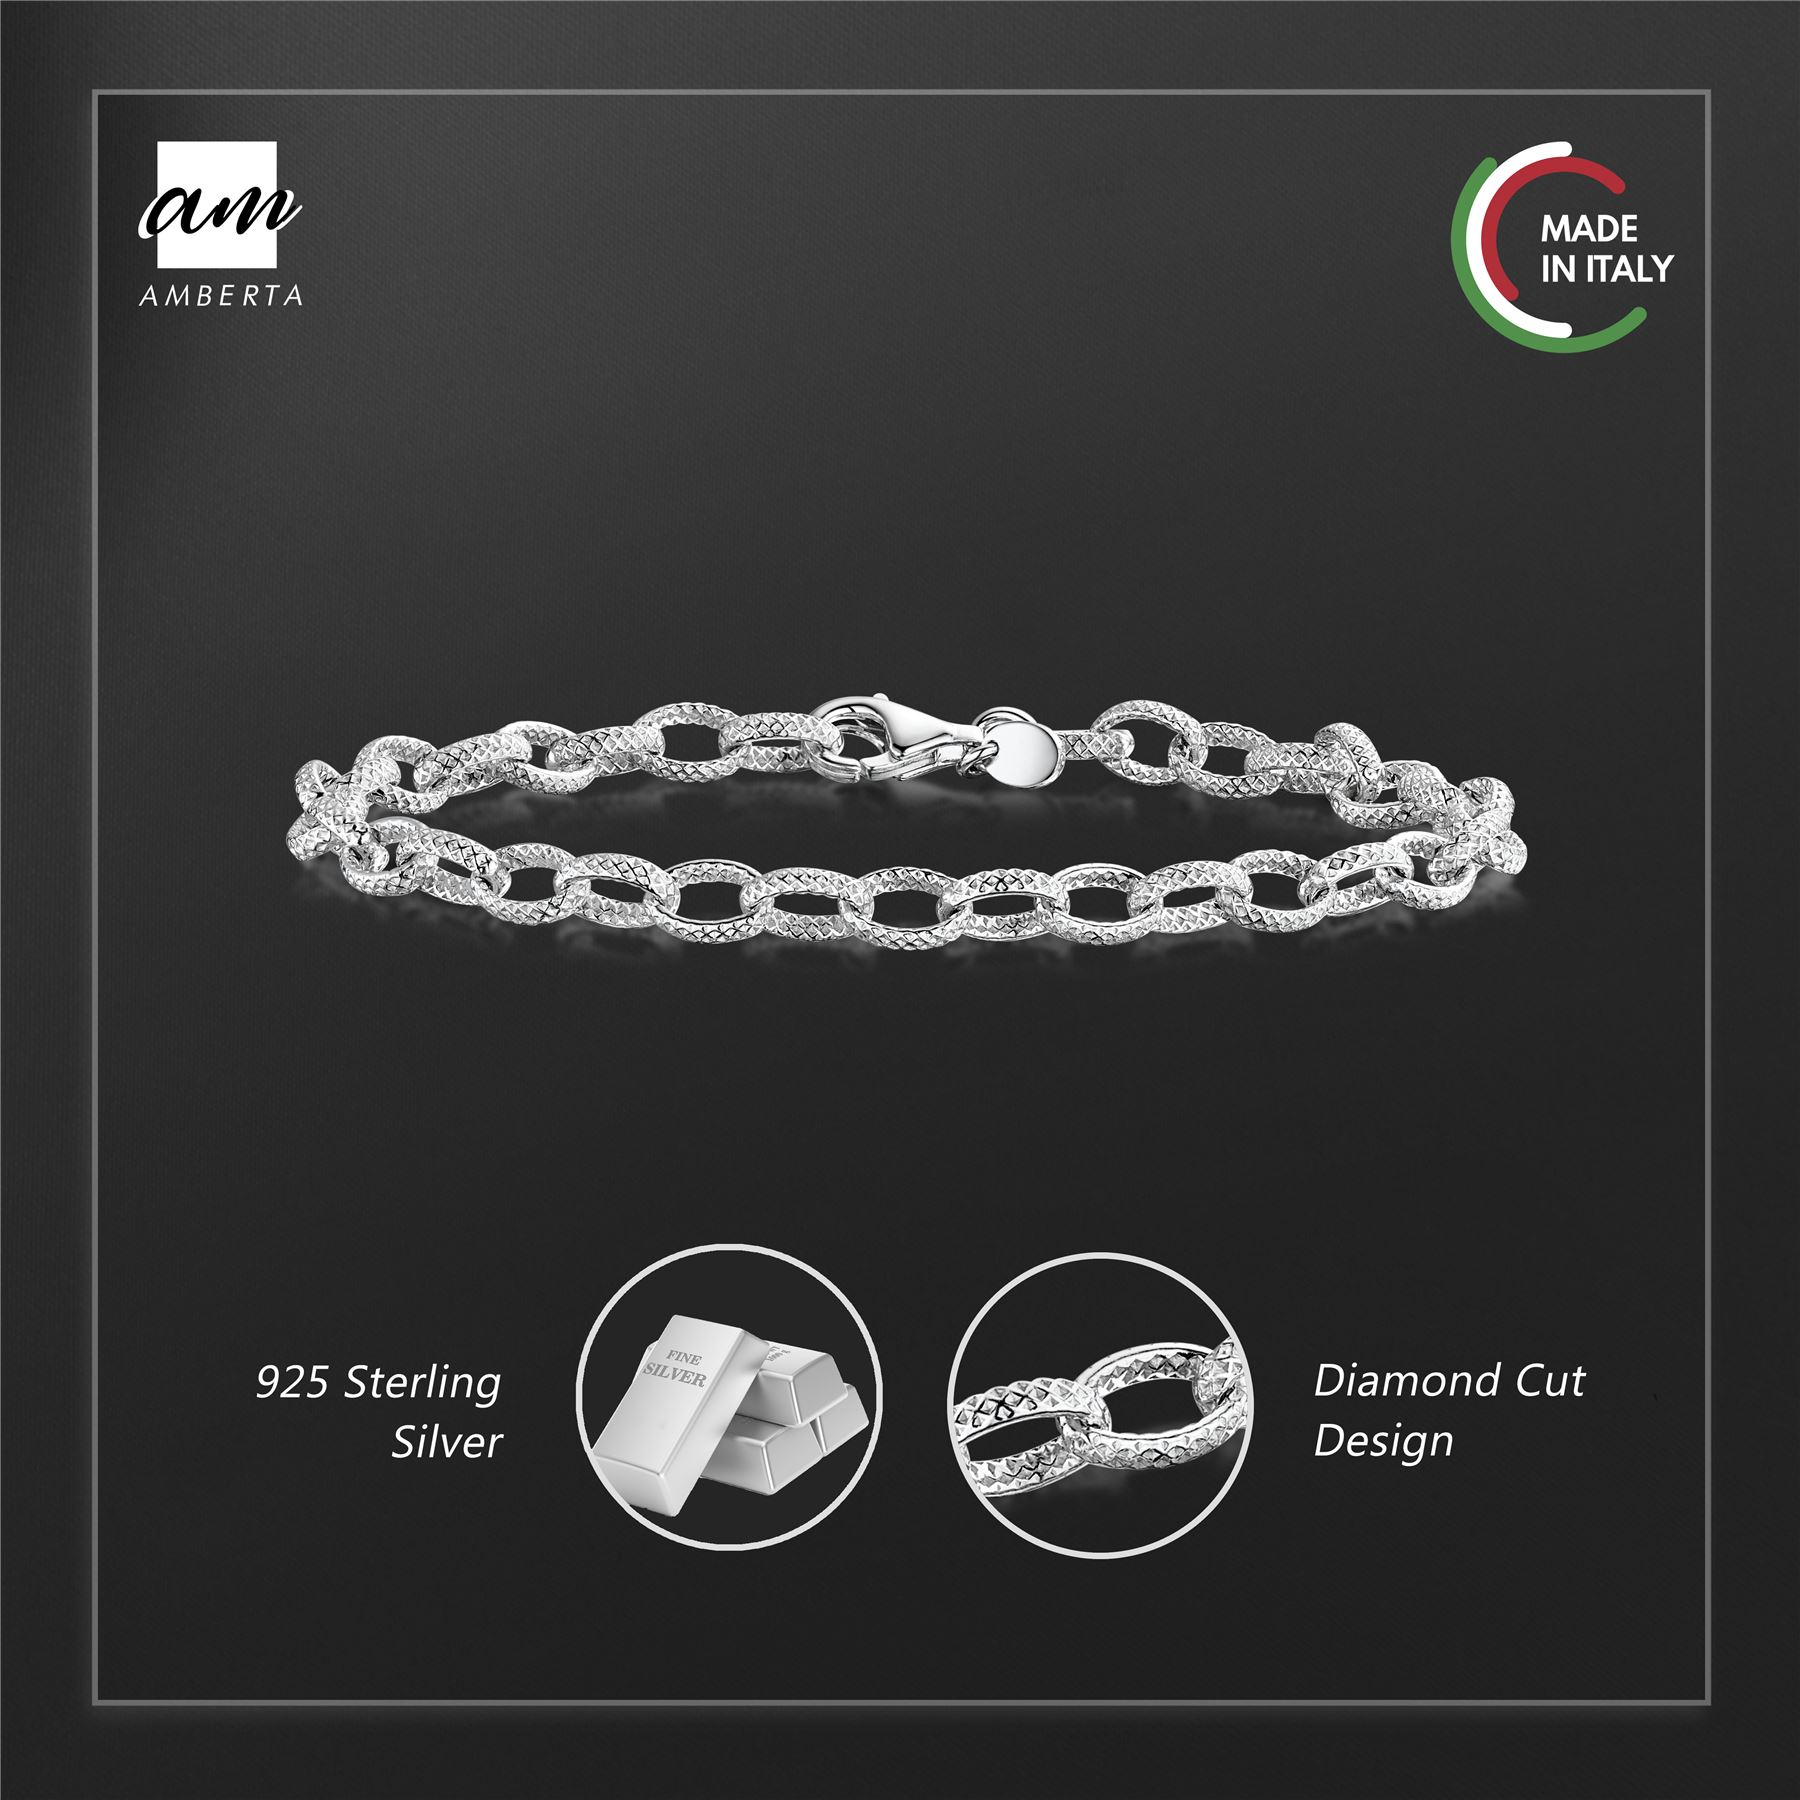 Amberta-Genuine-Real-925-Sterling-Silver-Chain-Bracelet-for-Women-from-Italy miniature 30